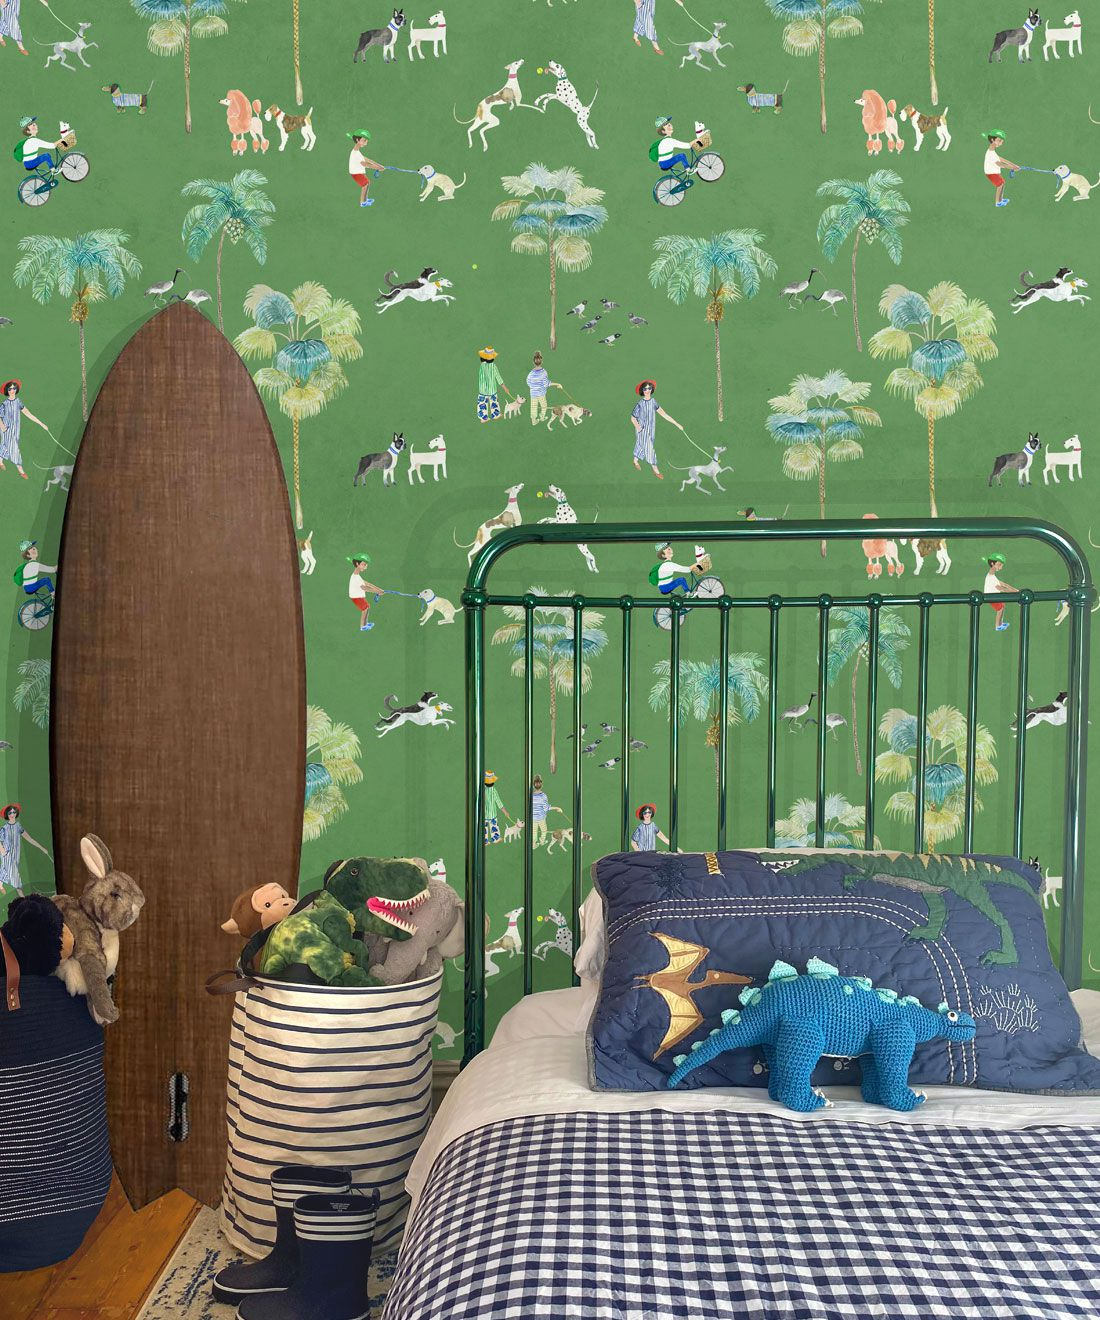 At The Dog Park Wallpaper • Kids Wallpaper • Green • Insitu